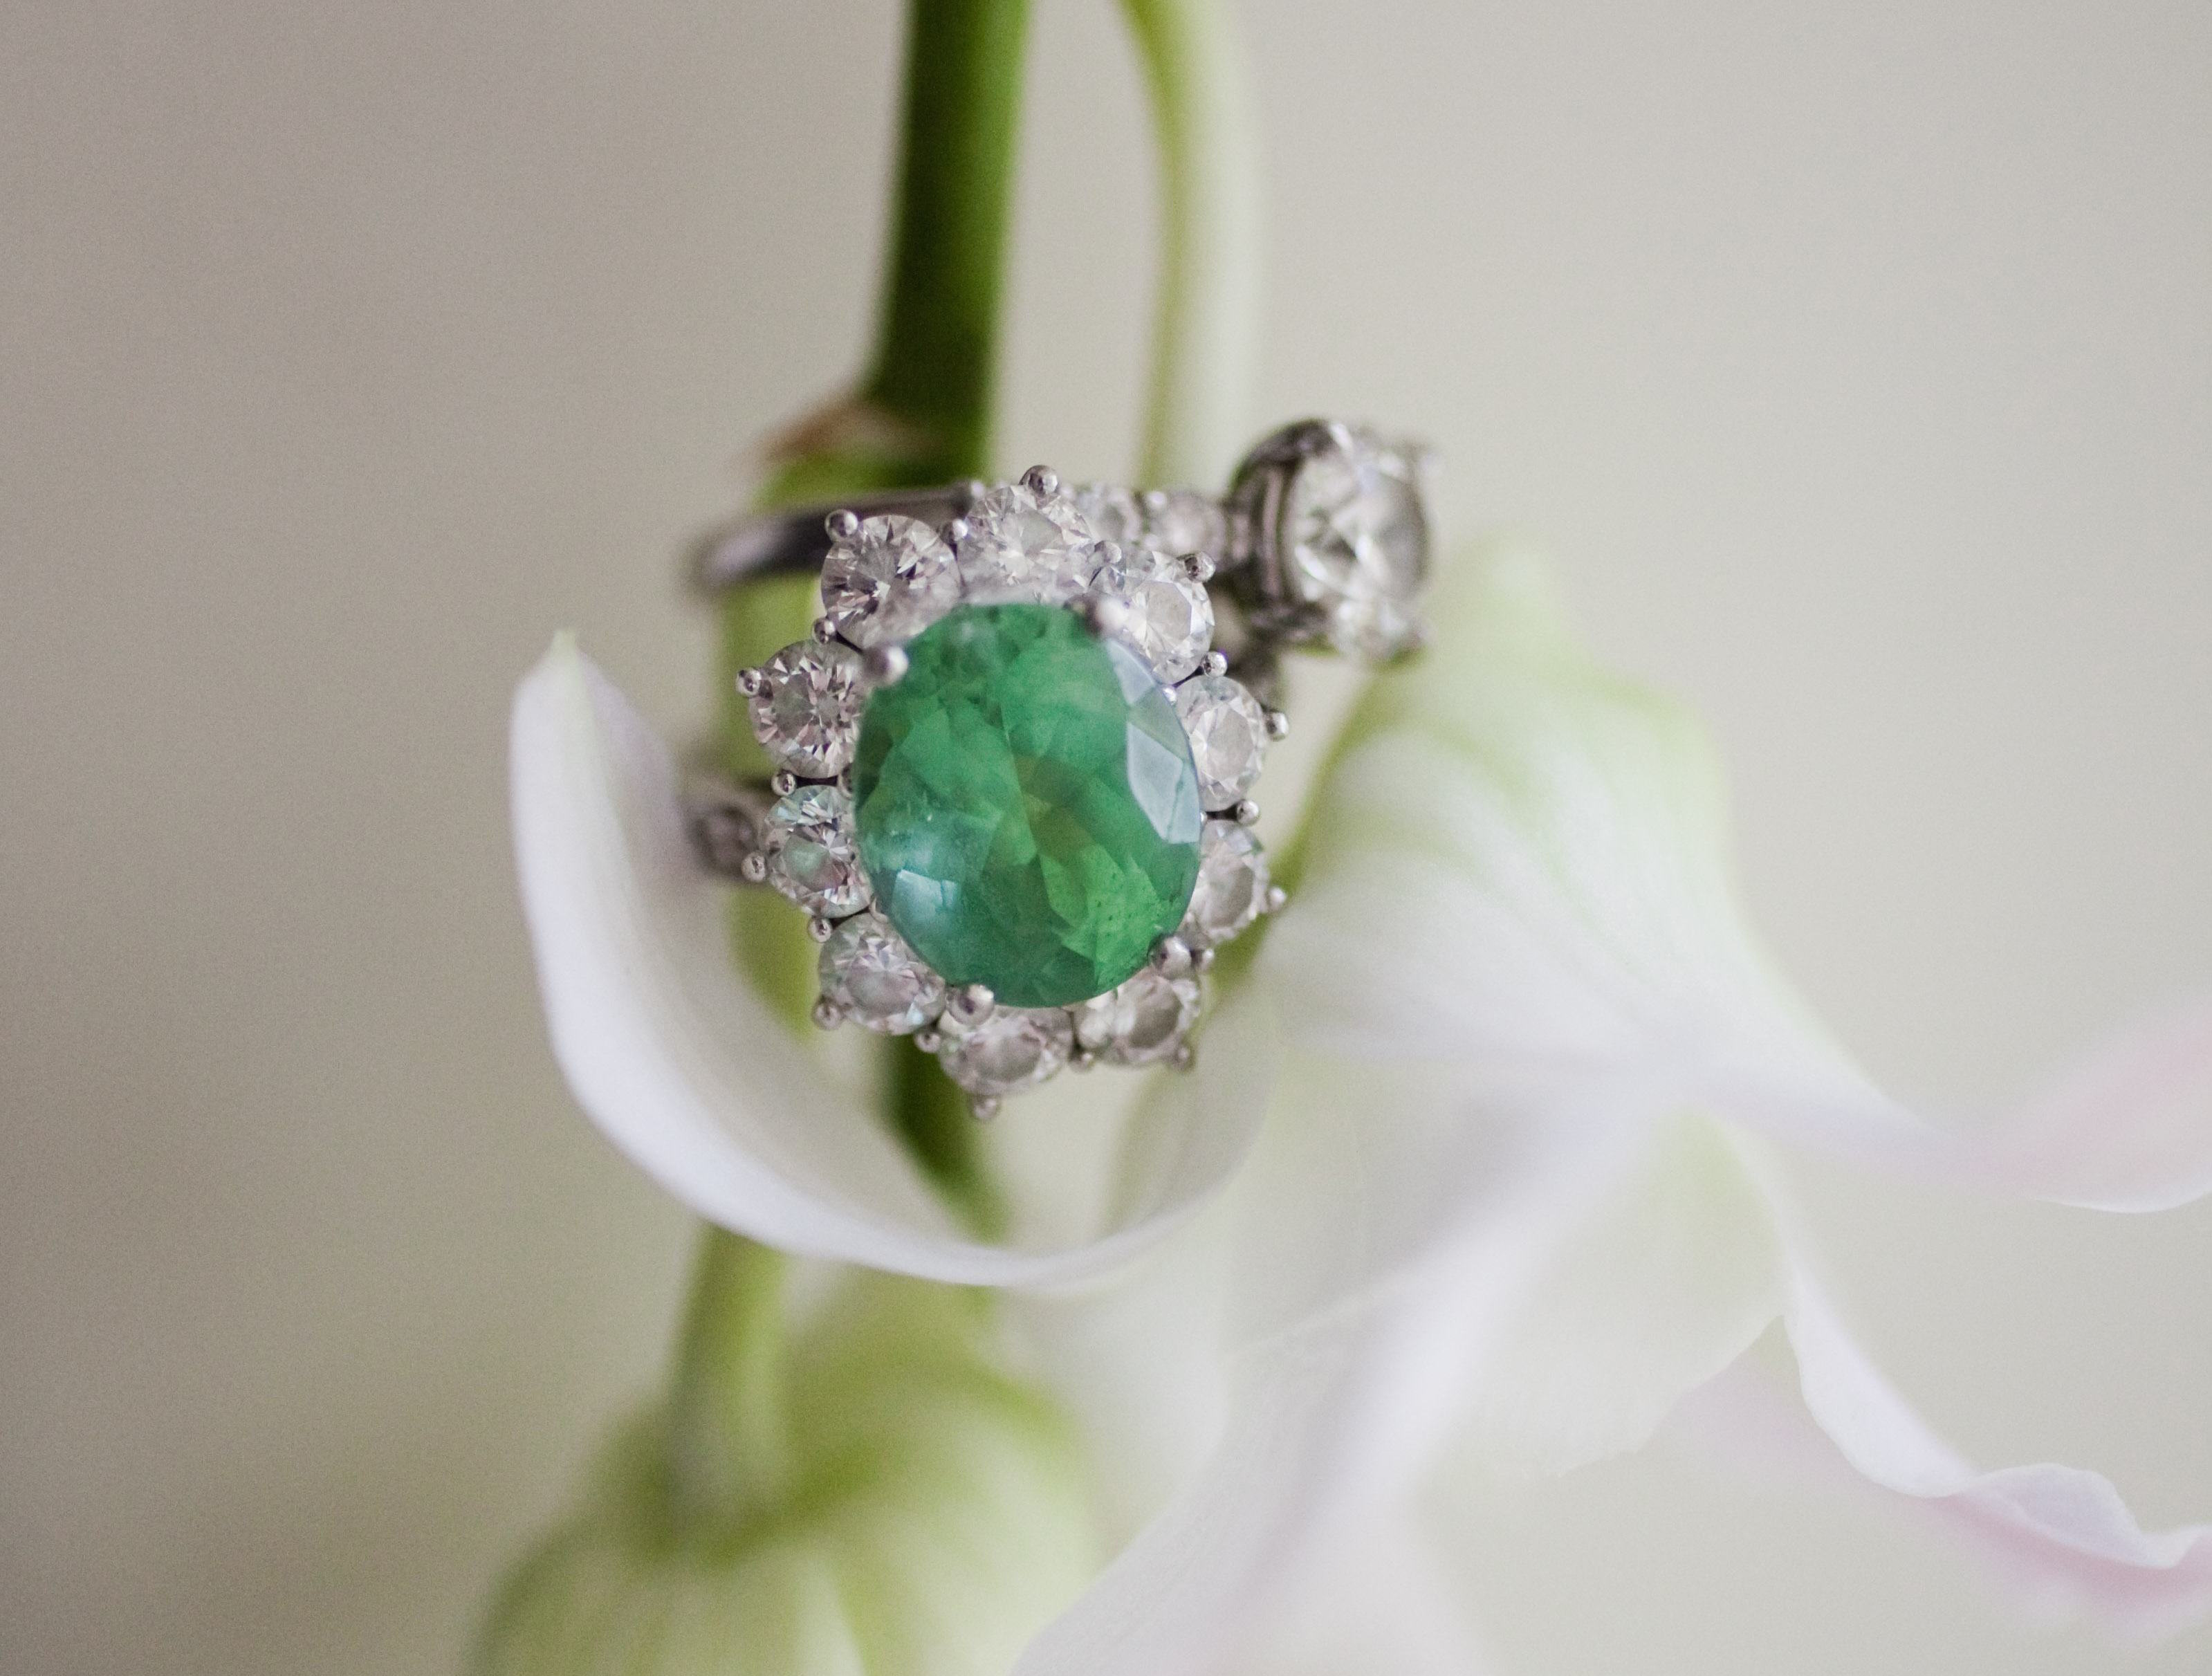 chrysoprase listing zoom cast fullxfull rings sterling il ring gemstone silver green